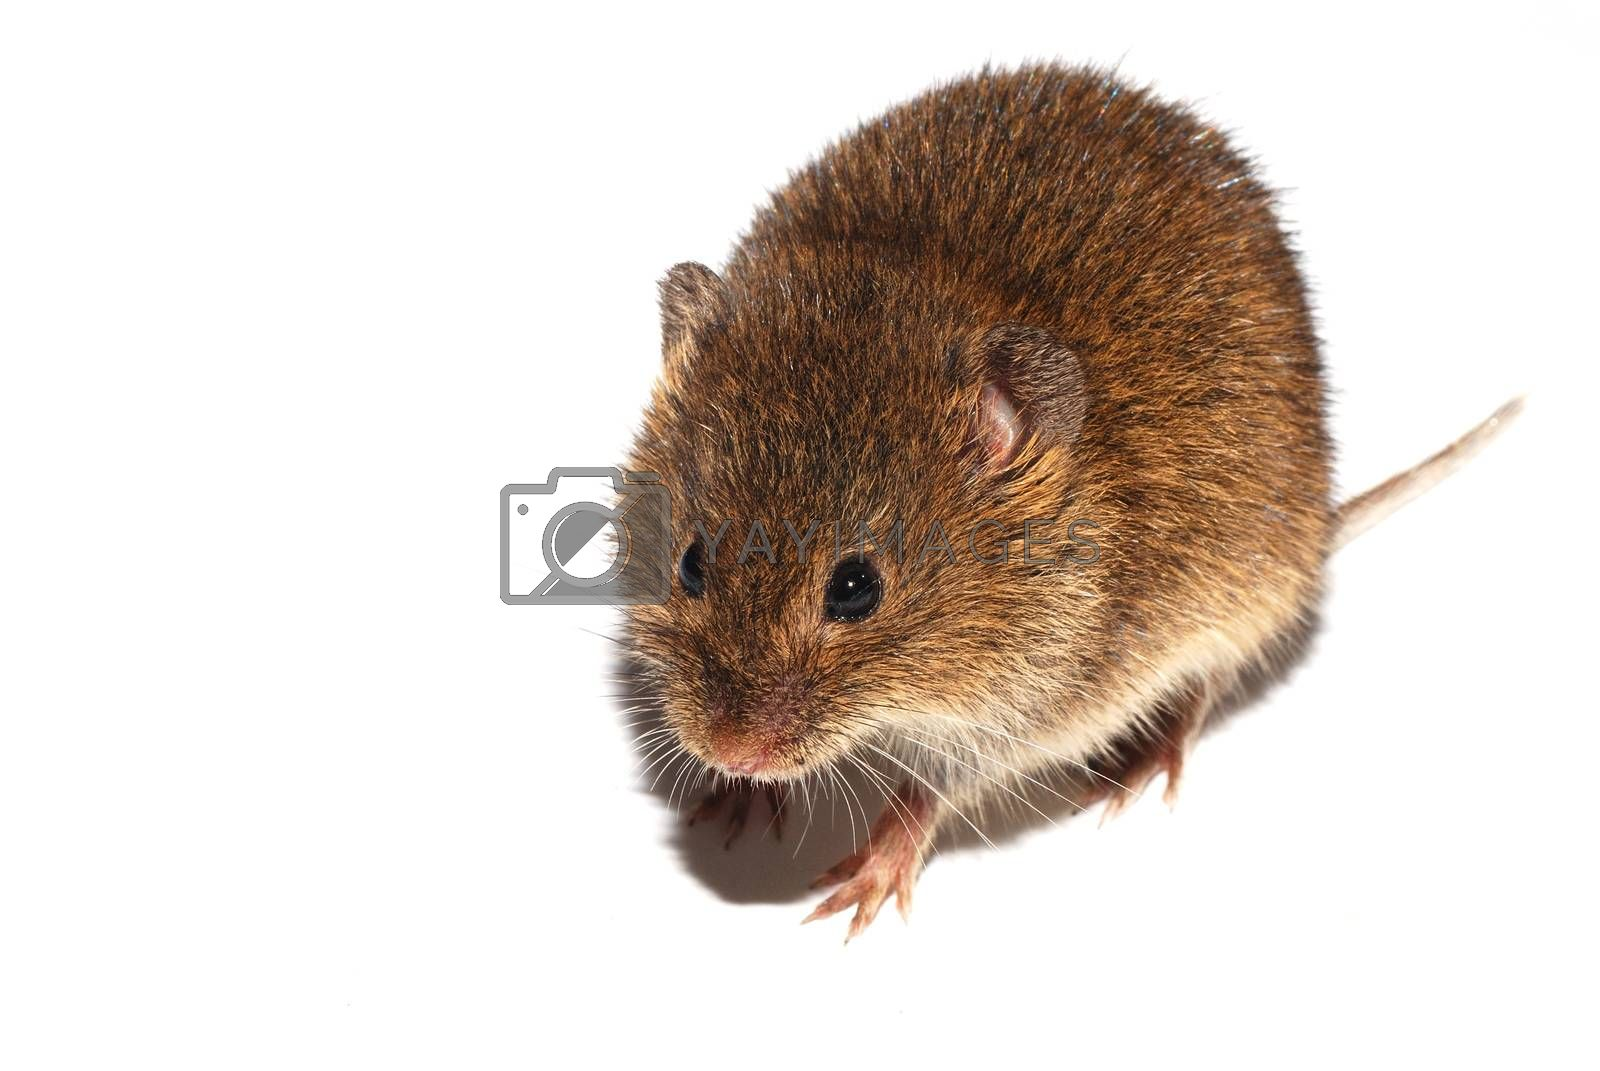 young little brown mouse walking on white background